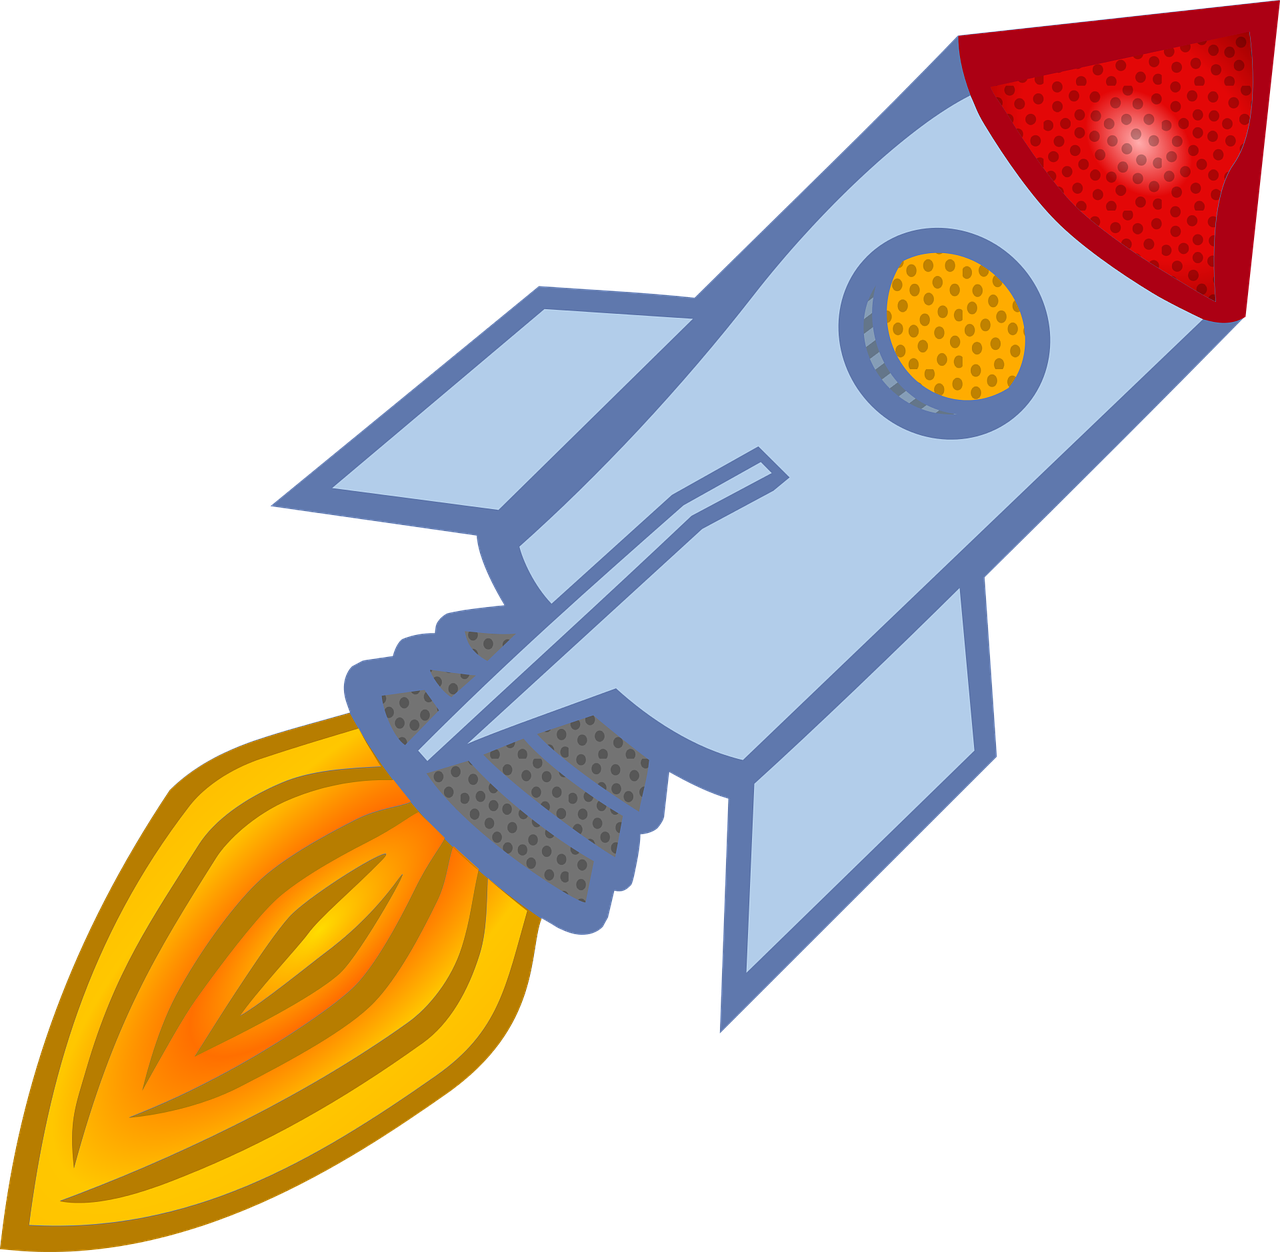 Boosters clipart